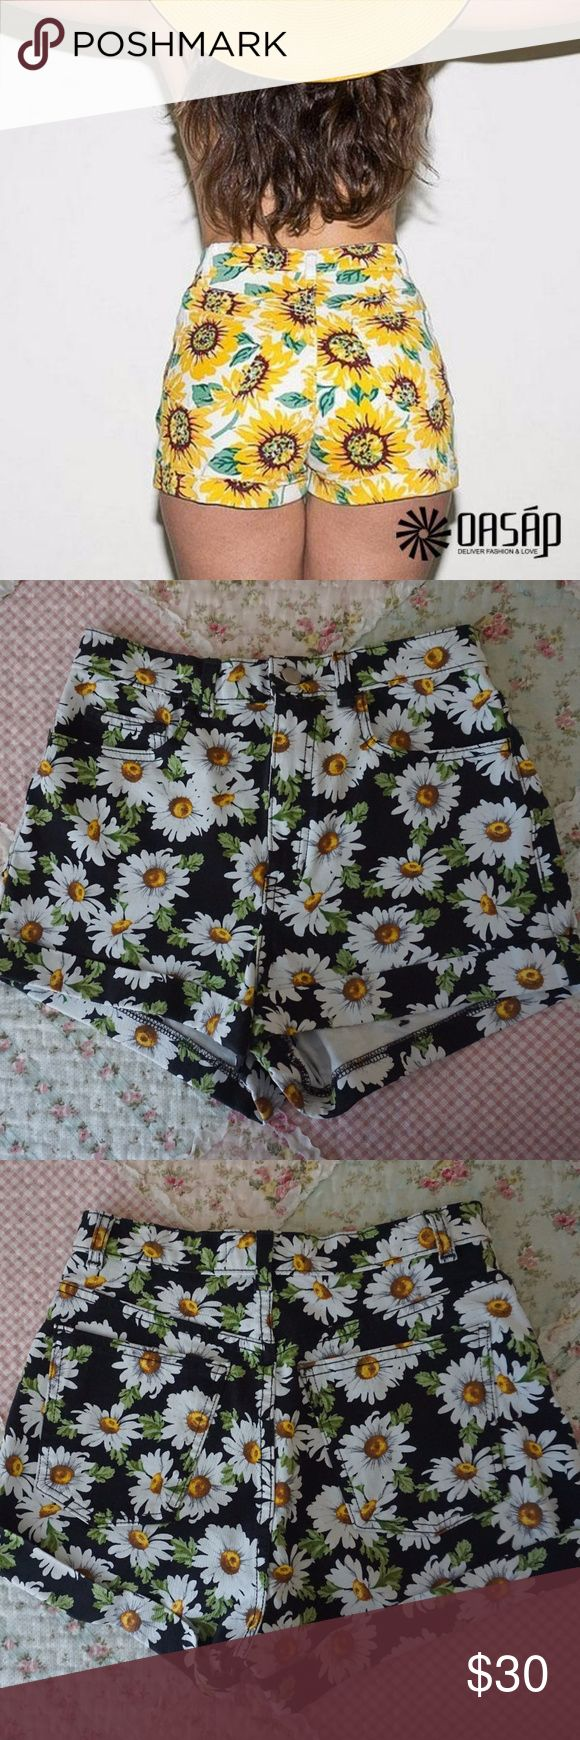 American Apparel Daisy Short High Waist American Apparel Shorts. Black with daisy print. American Apparel Shorts